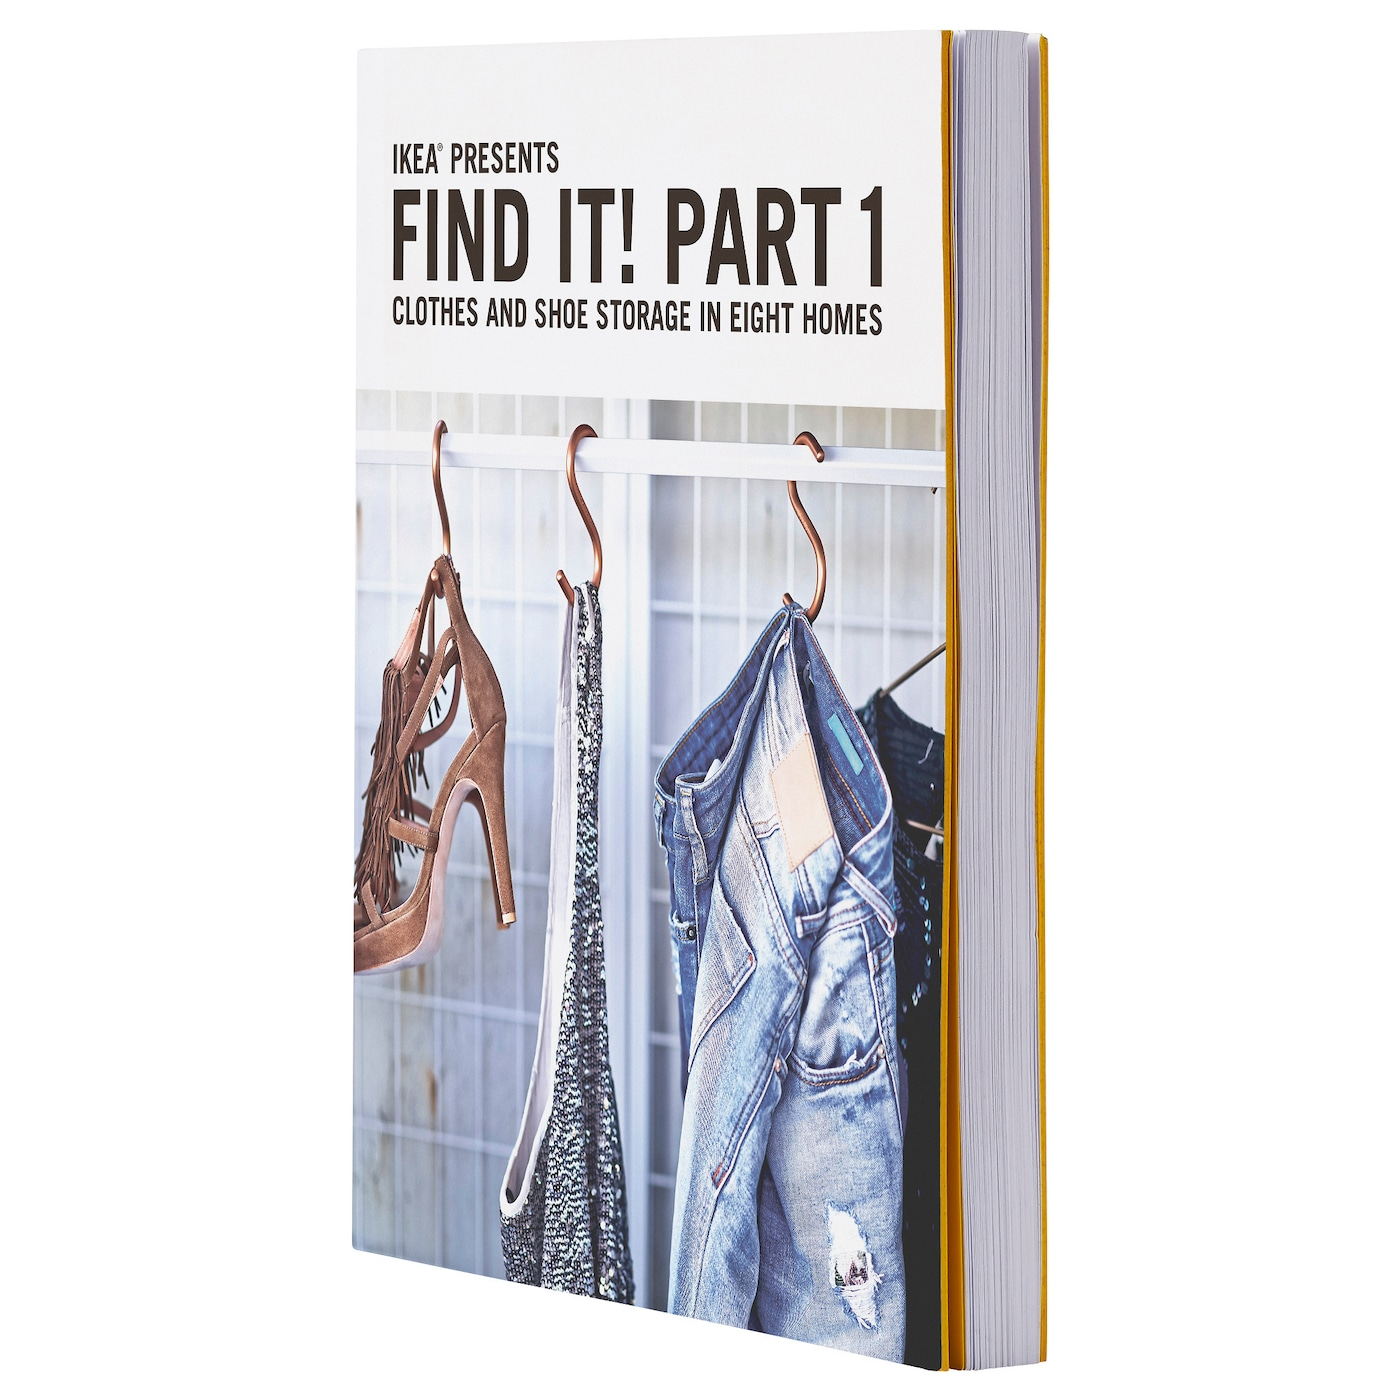 IKEA MALM – FIND IT! PART 1. book